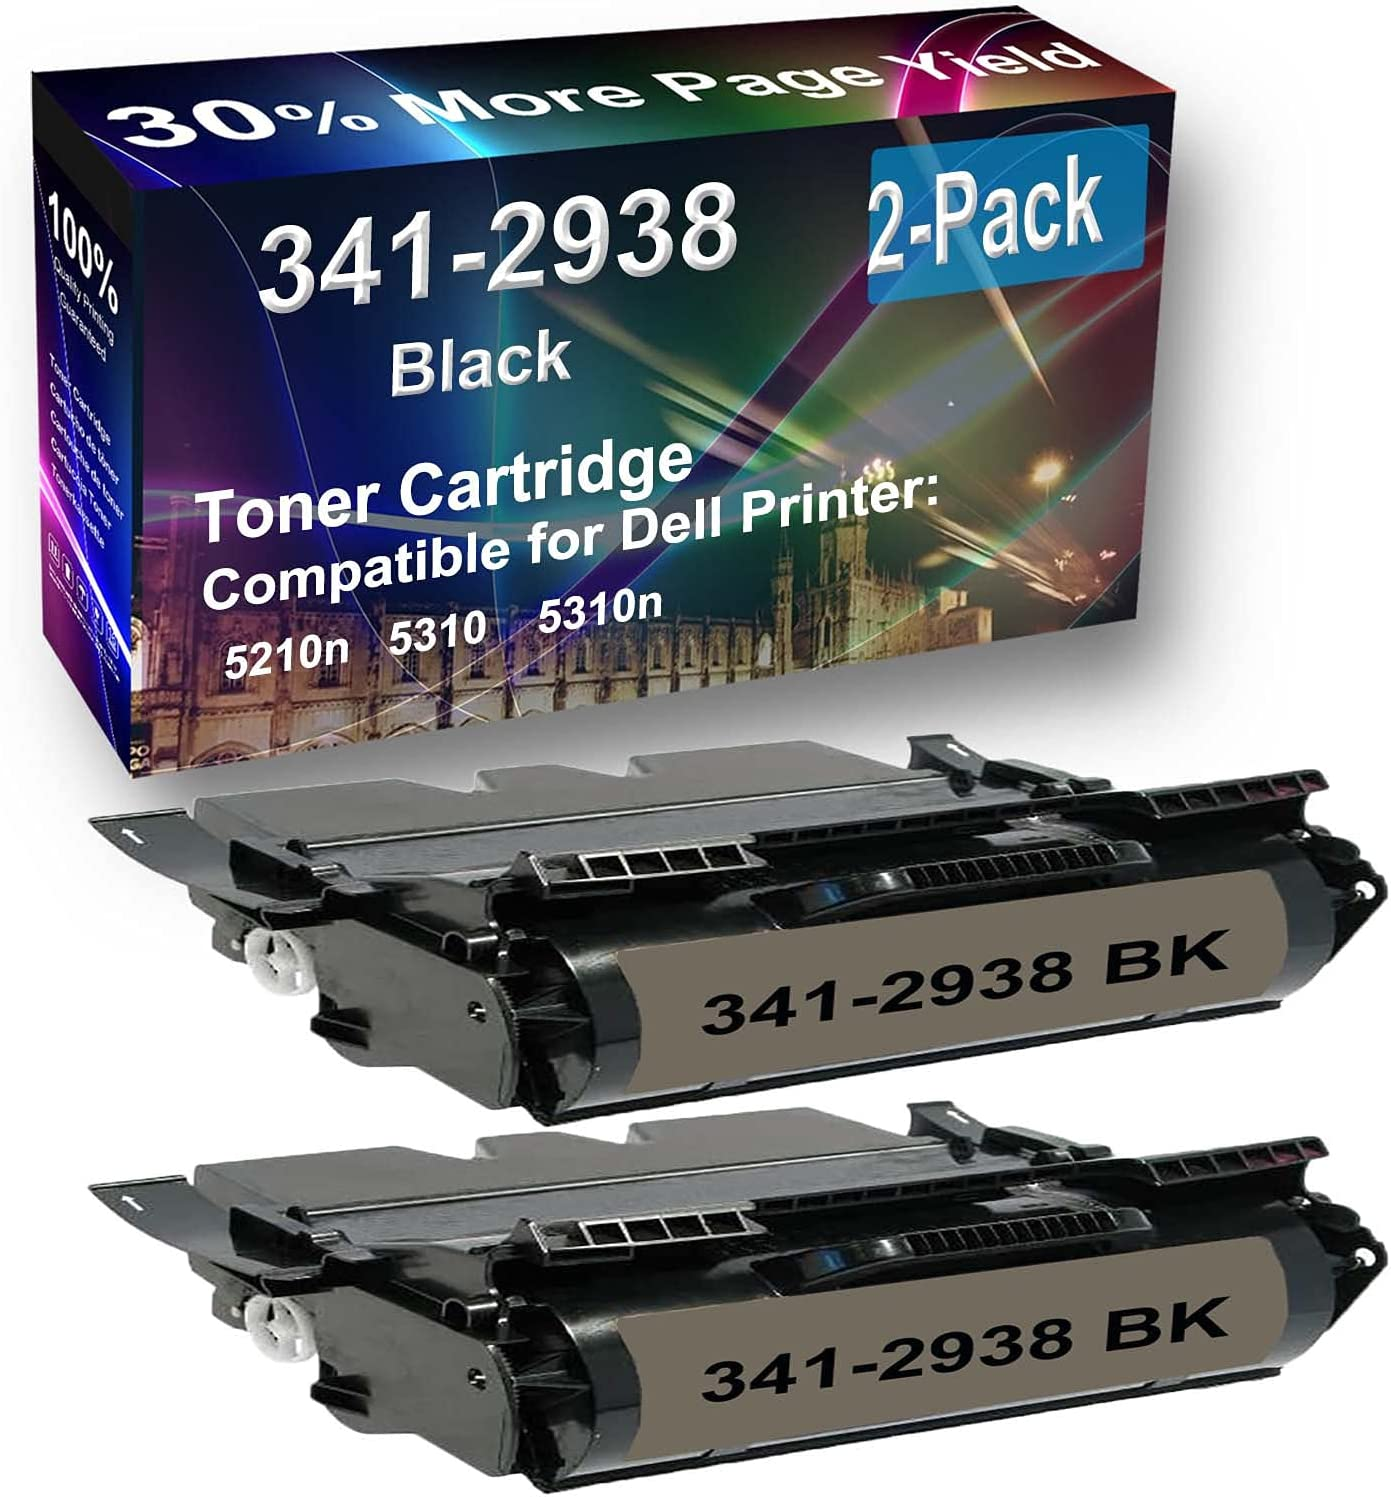 2-Pack Compatible High Yield 5310 Printer Cartridge Replacement for Dell 341-2938 Toner Cartridge (Black)